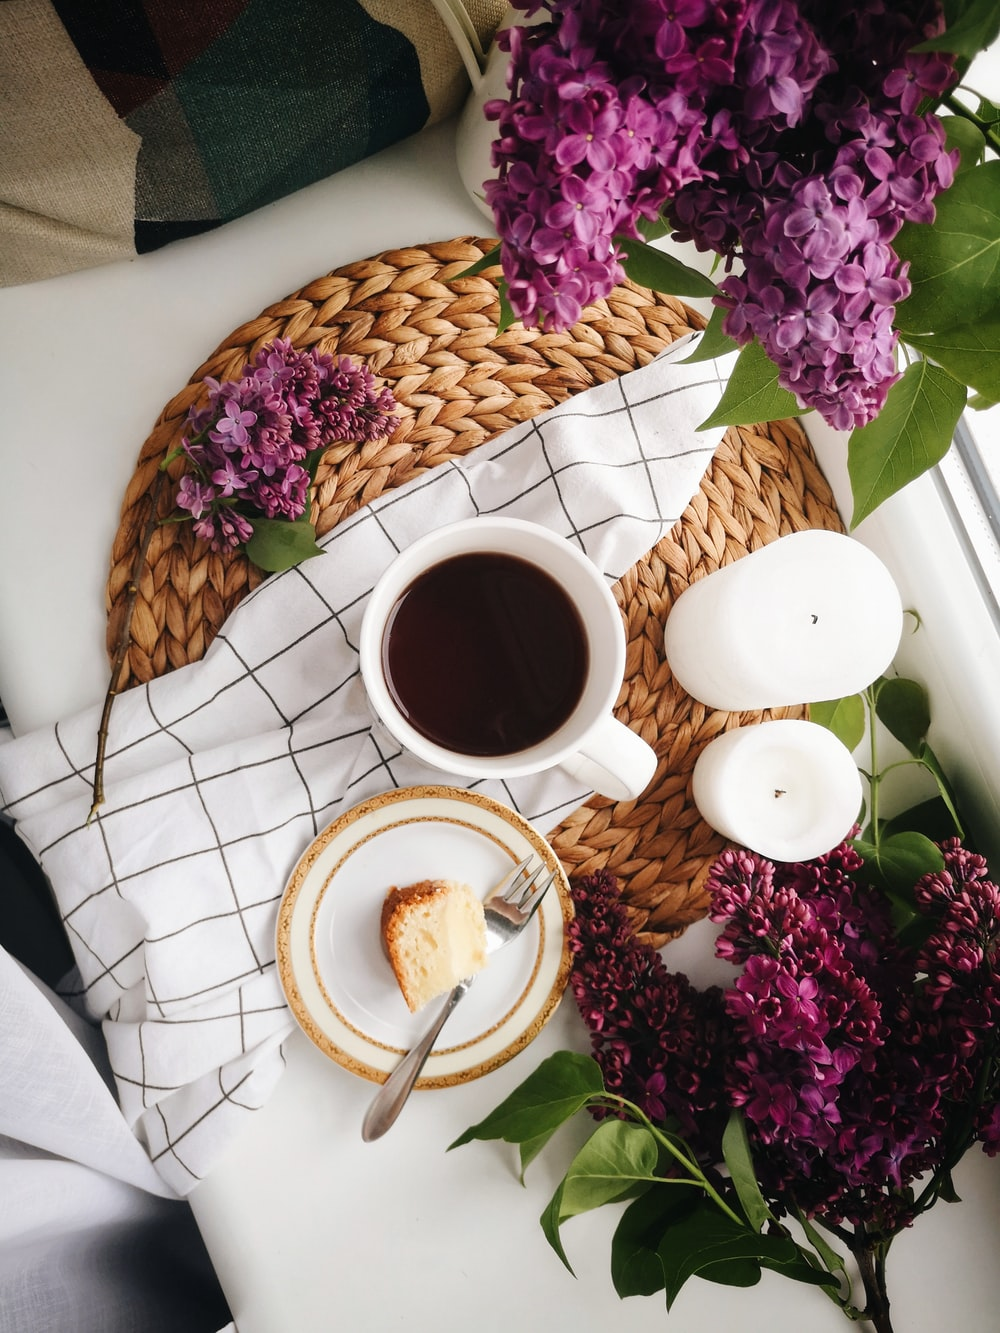 high angle photo of coffee in mug beside food and candles